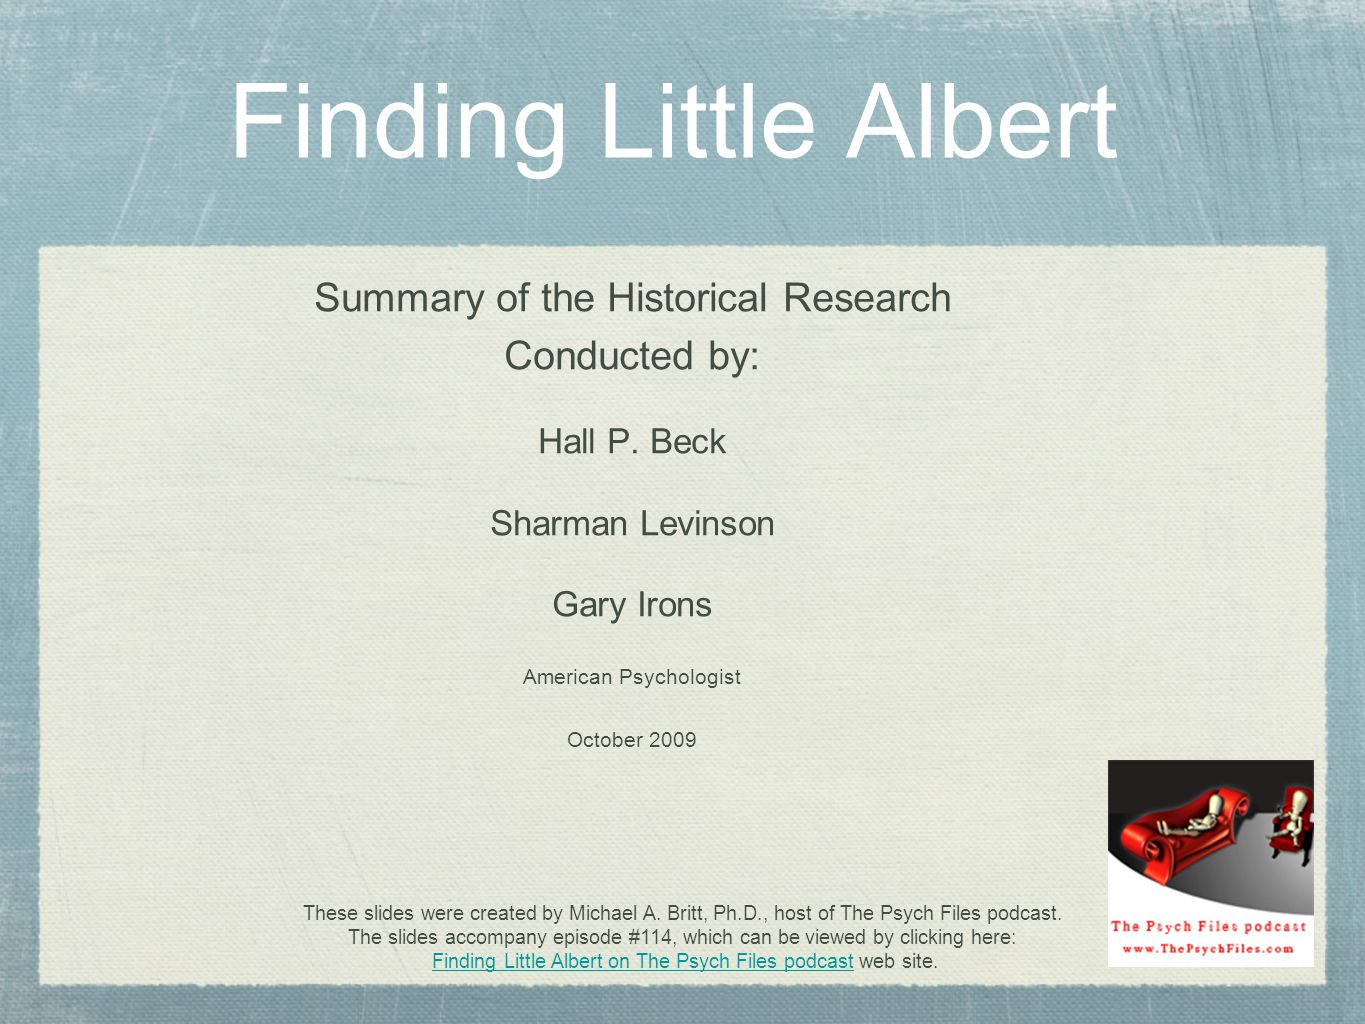 Finding Little Albert Summary of the Historical Research Conducted by: Hall P. Beck Sharman Levinson Gary Irons American Psychologist October 2009 The